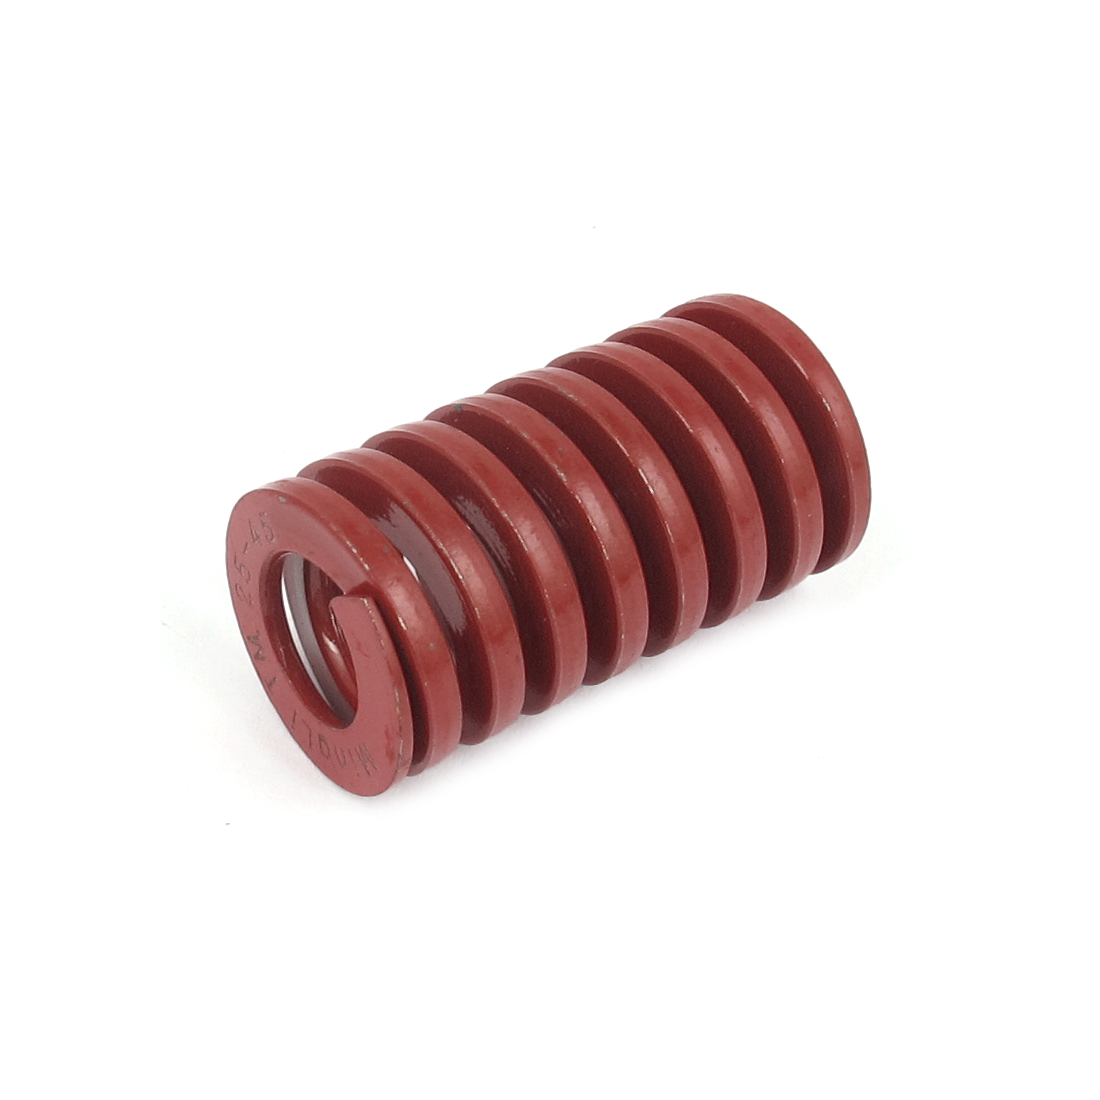 25mmx45mm Chromium Alloy Steel Medium Load Die Spring Red